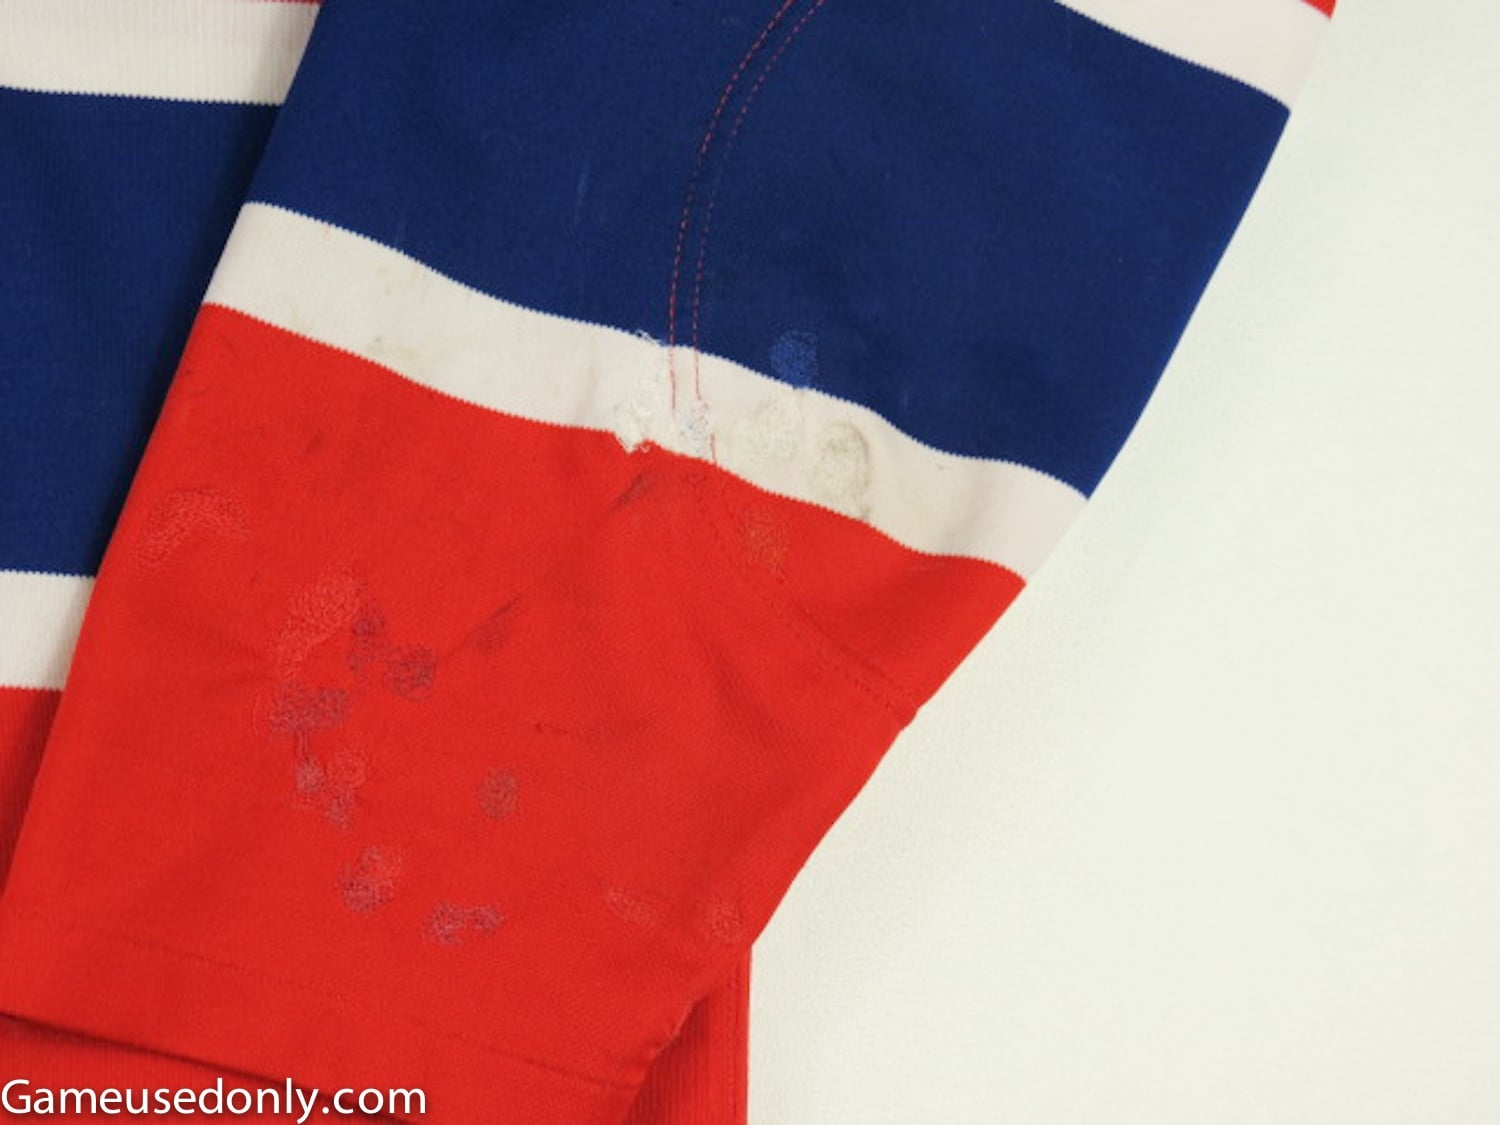 eft-Sleeve-Repairs-Guy-Lafleur-Jersey